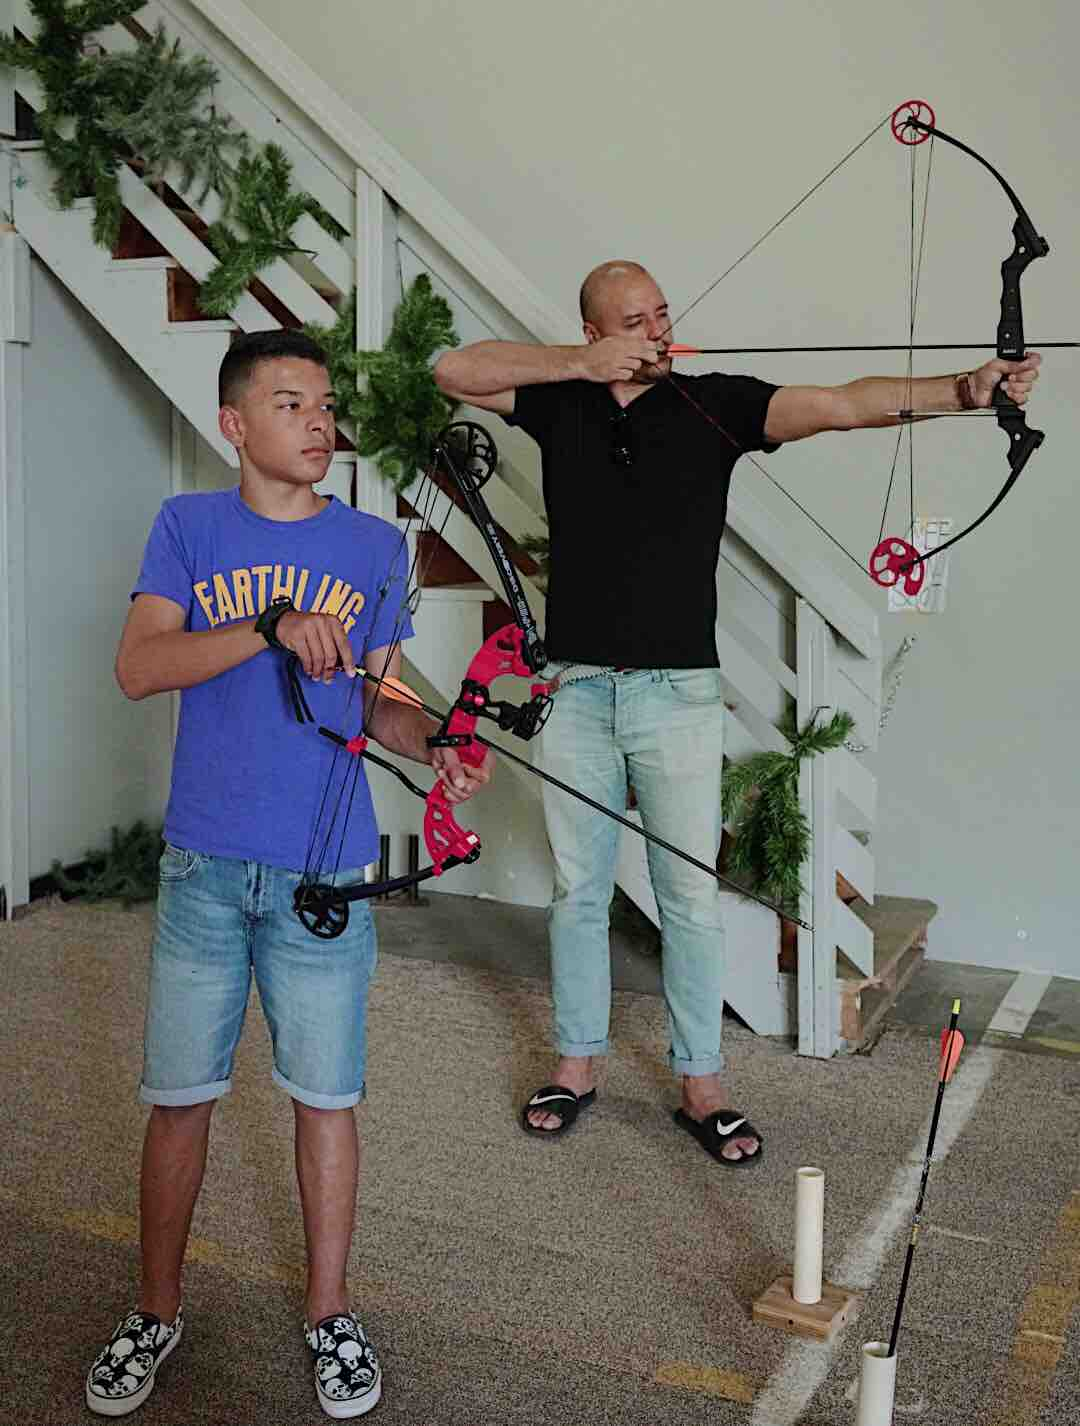 We took our teen to an archery lesson